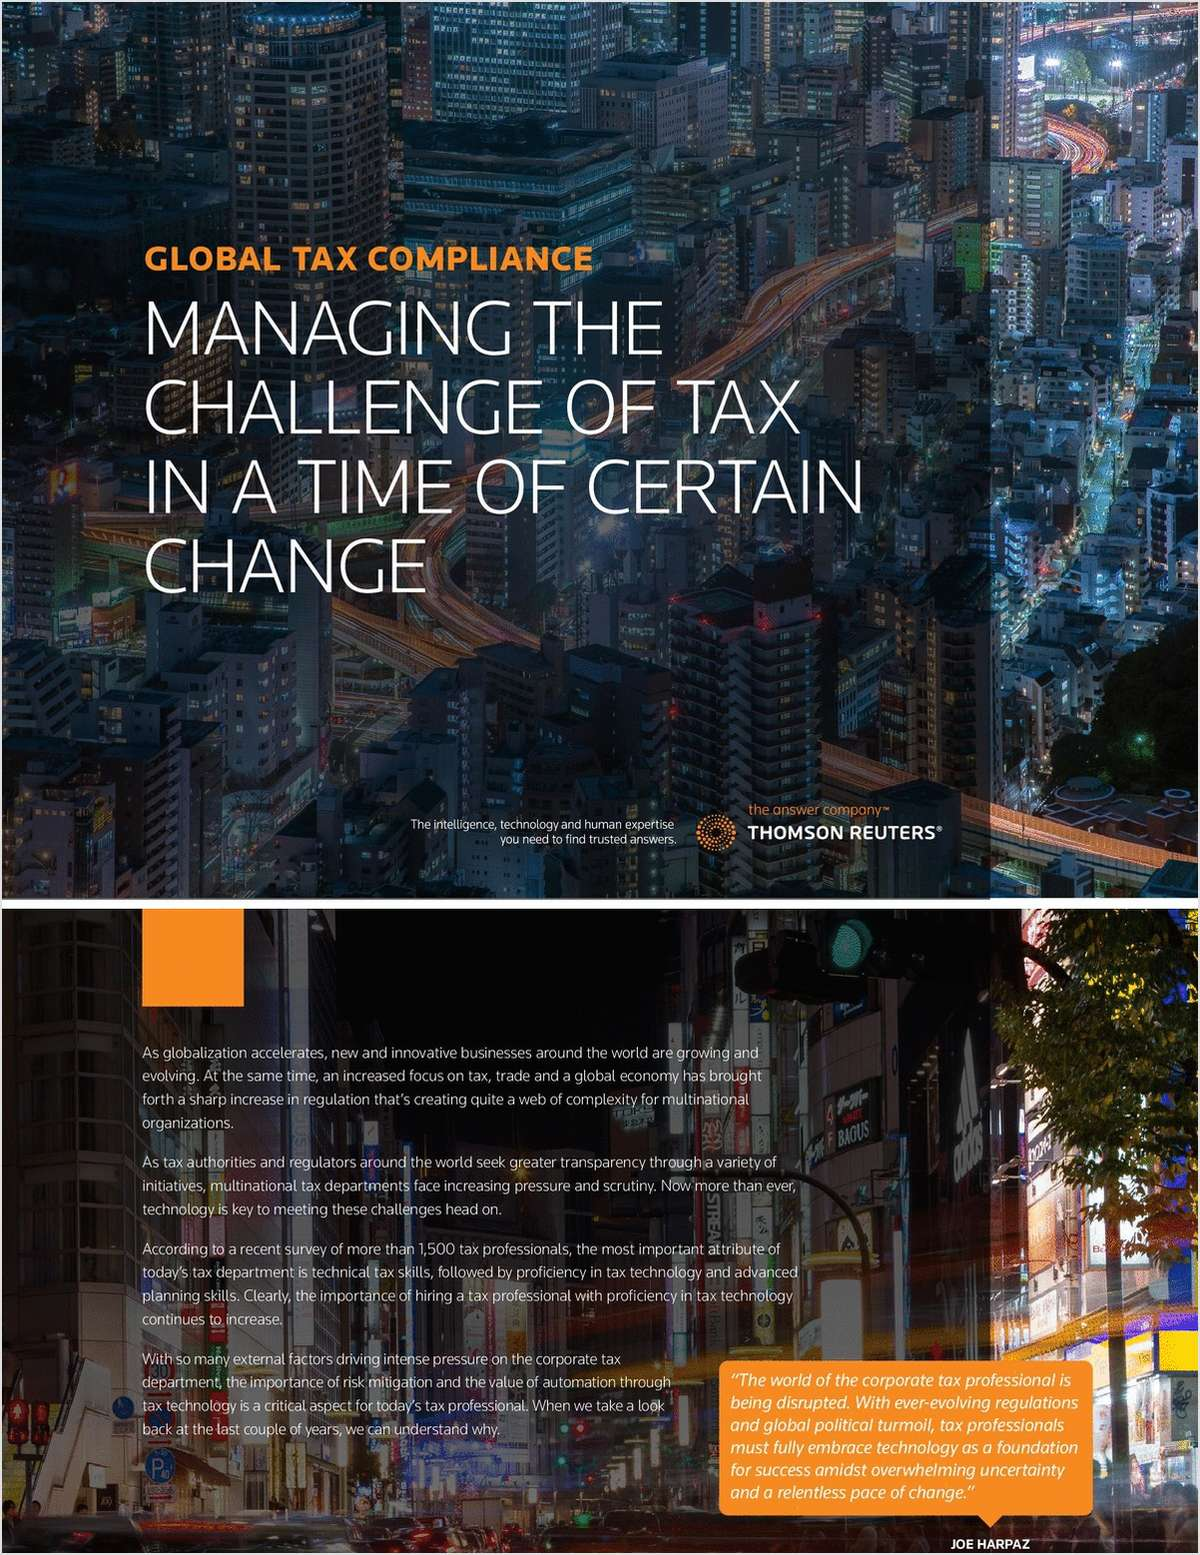 Managing the challenge of tax in a time of certain change